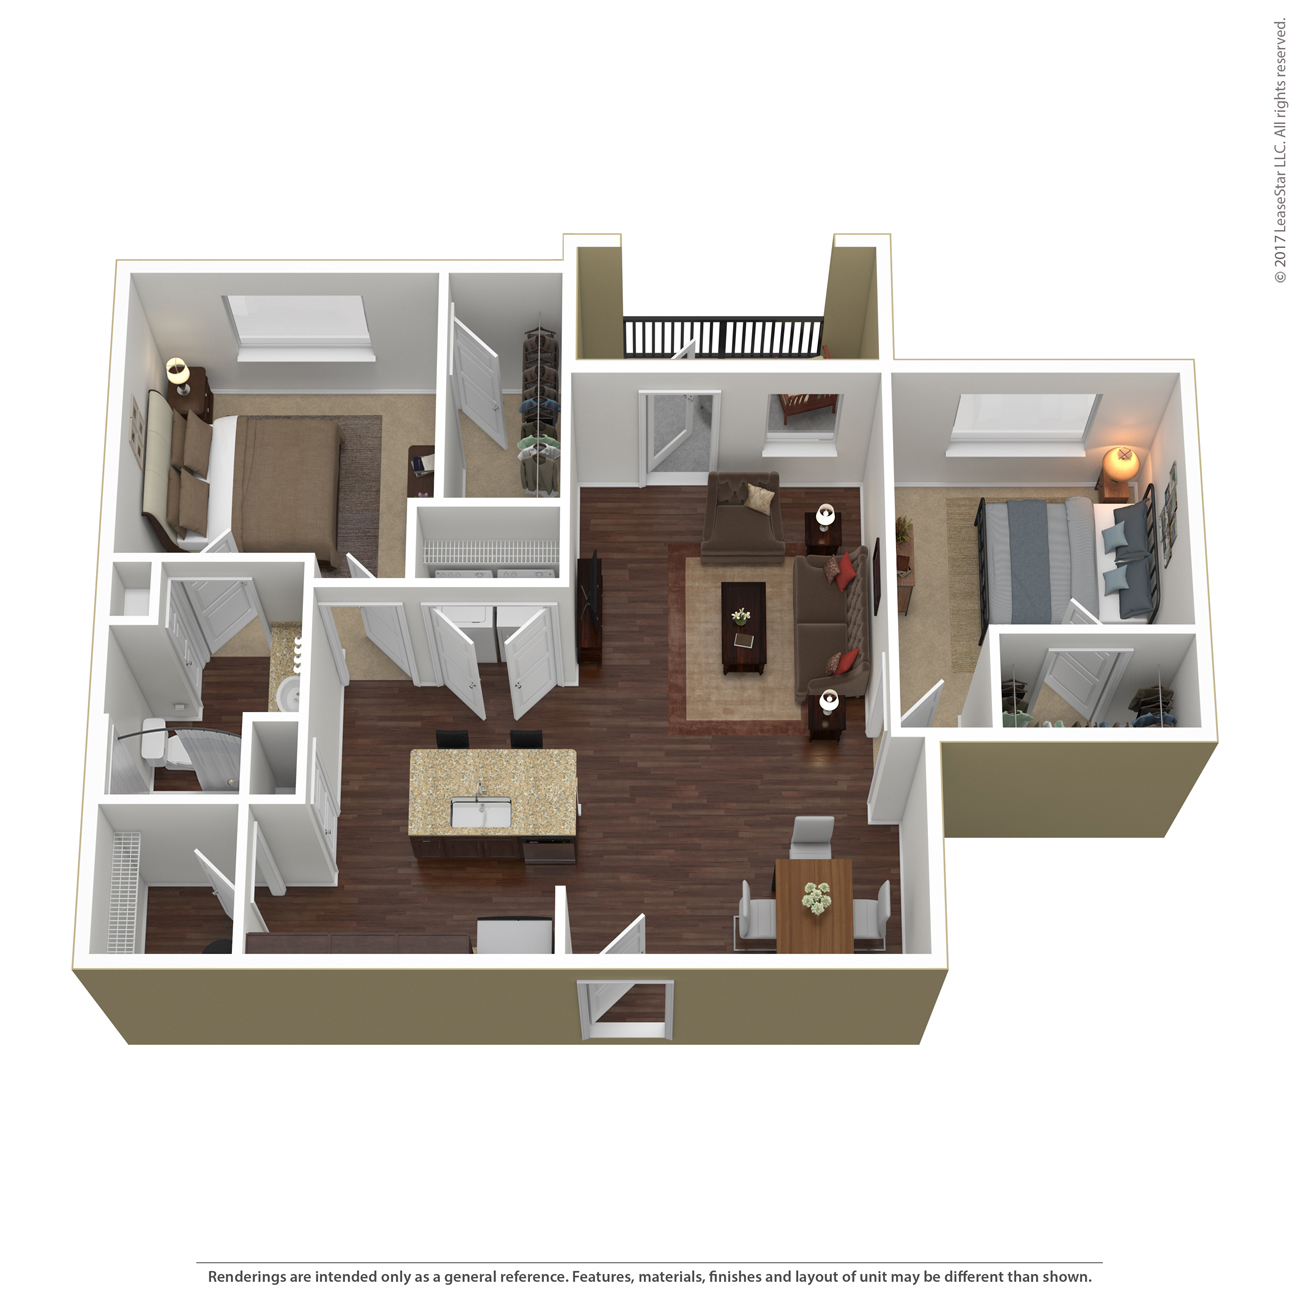 2 bedroom 1 bath apartment home design for 1 bathroom 2 bedroom